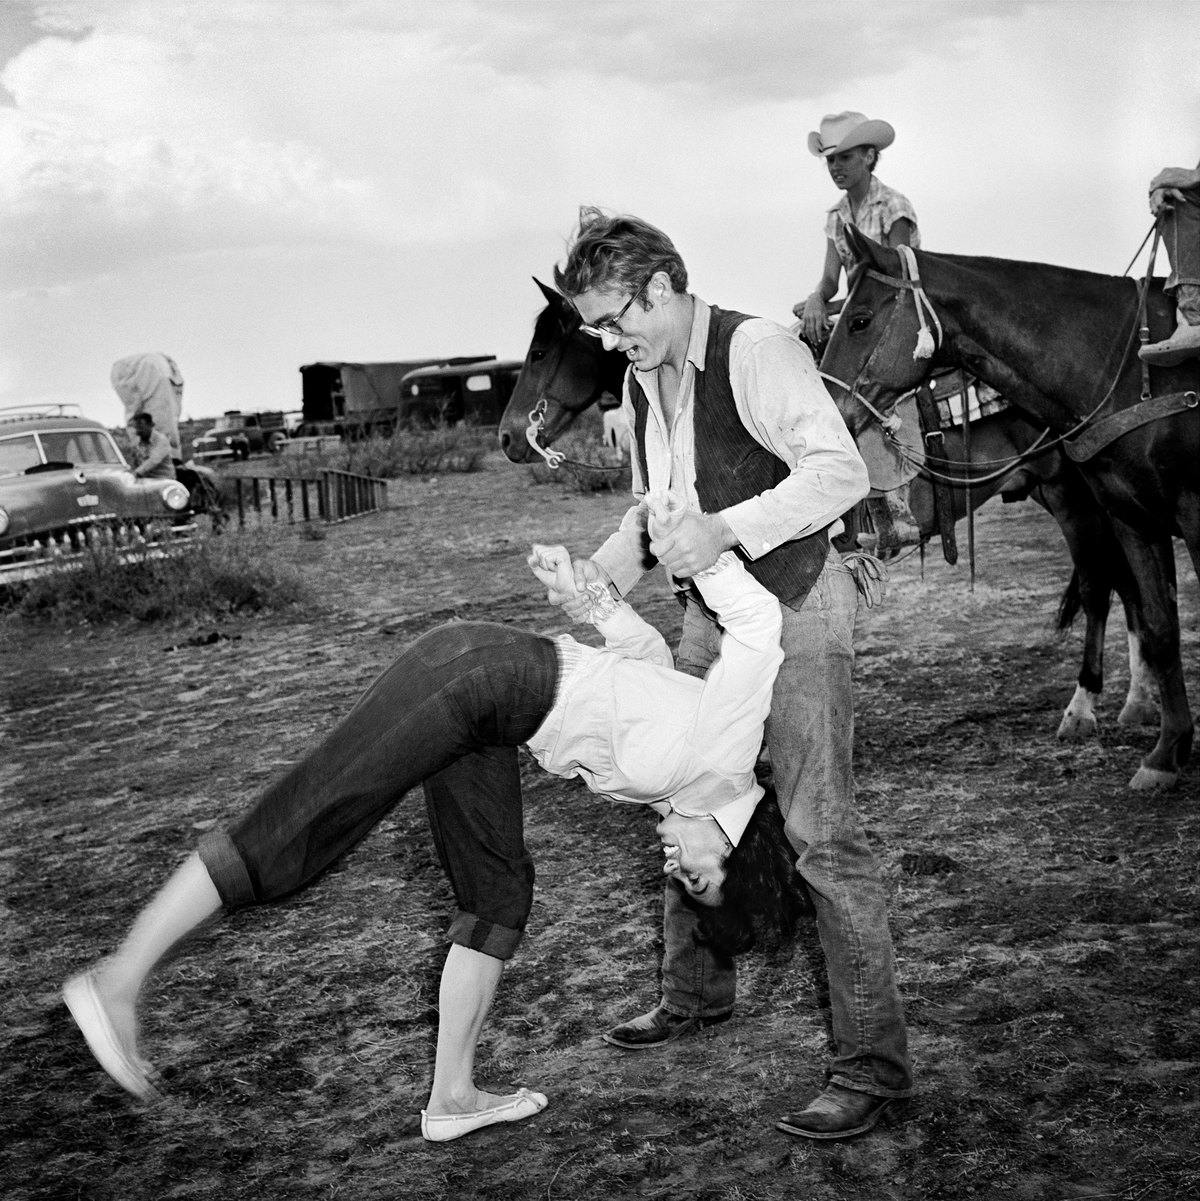 Actress Elizabeth Taylor goes head over heels as actor James Dean helps on the set of the movie 'Giant' which was released on November 24, 1956.